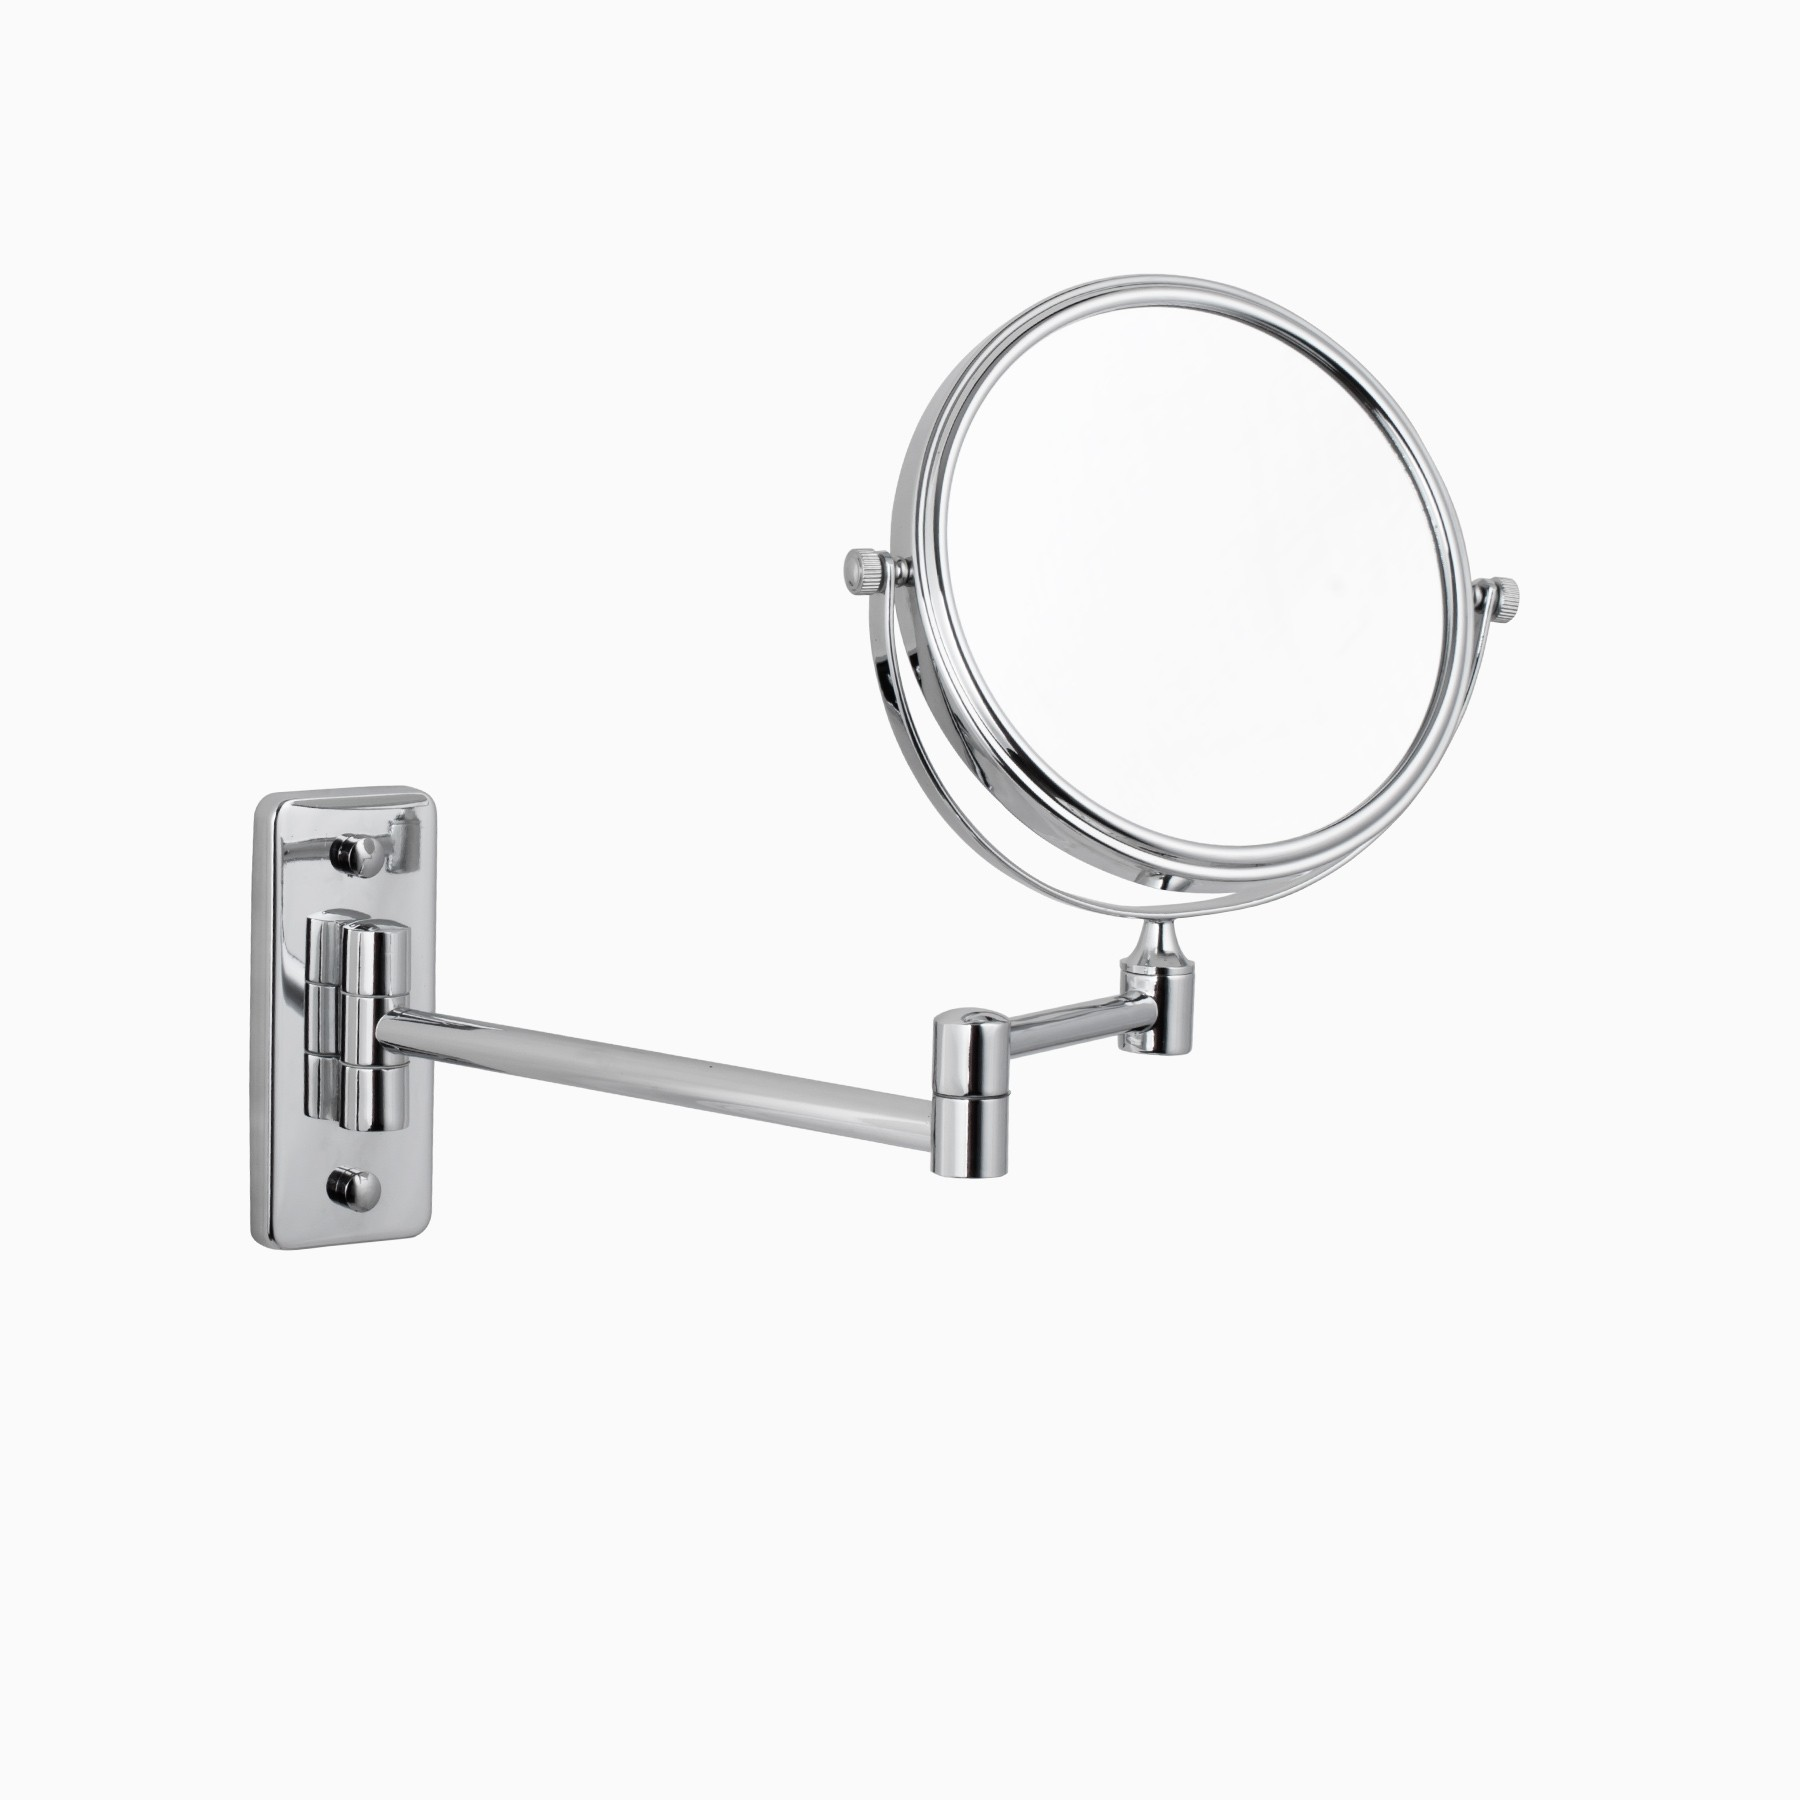 Windor Make Up Mirror With Adjustable Arm In Polished